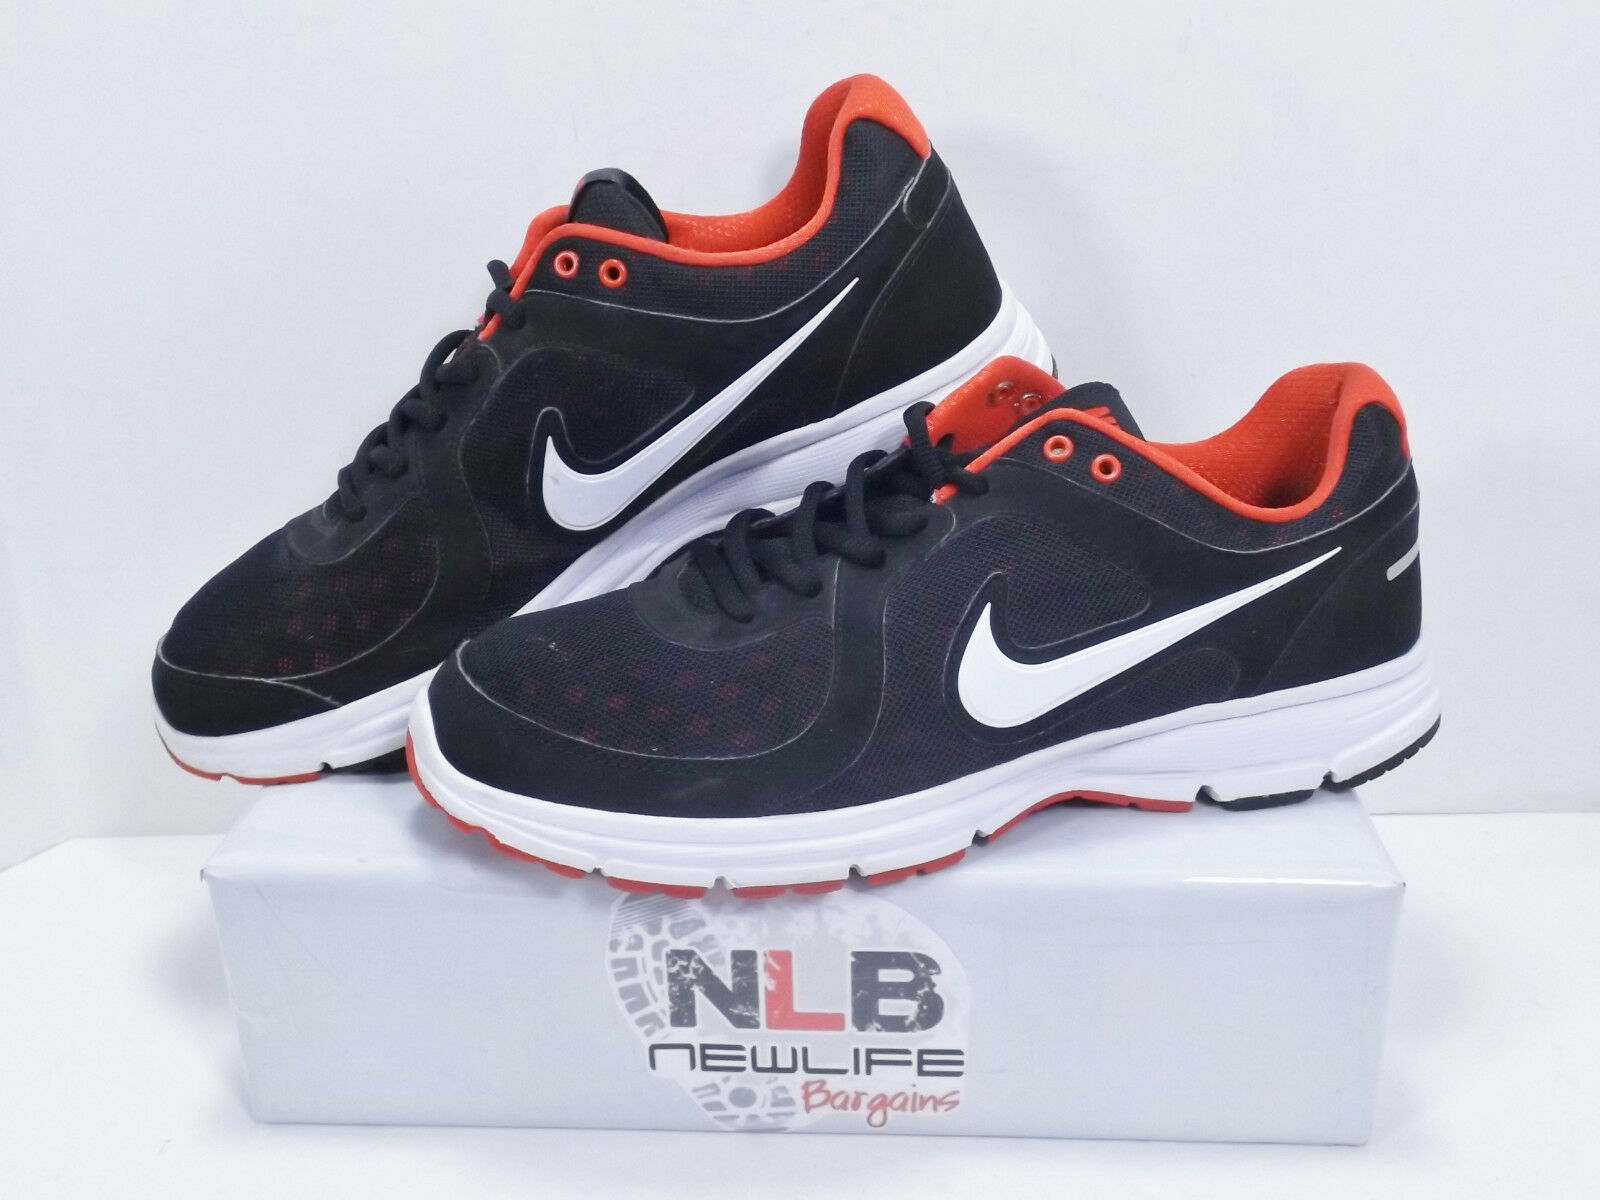 2013 Nike Relentless 443844-004 Black/Red Men's Comfortable Comfortable and good-looking